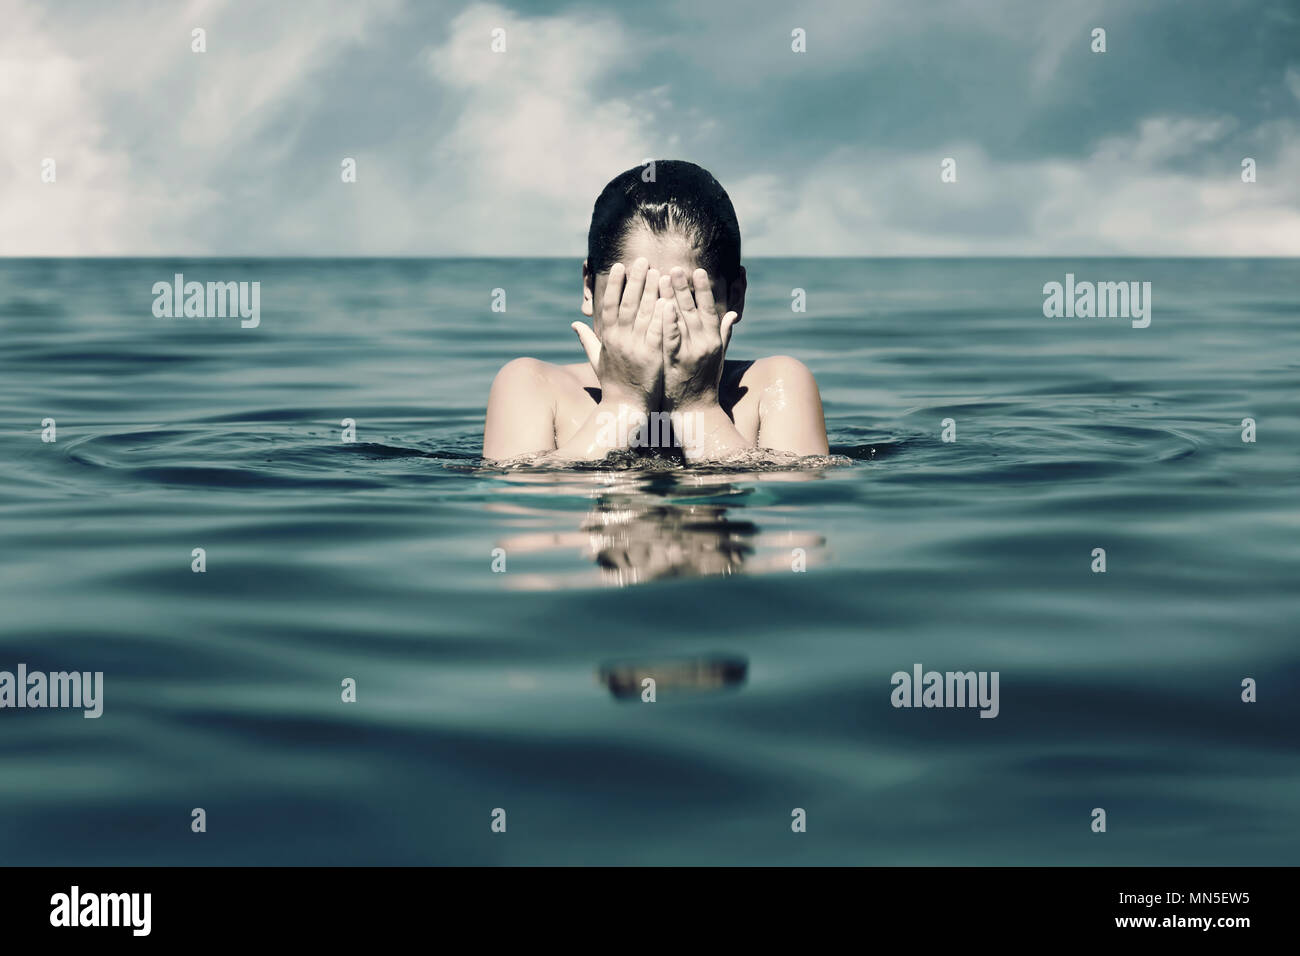 Caucasian little boy covers his face with his hands in the sea. Concept of child abuse, depression, and loneliness. - Stock Image